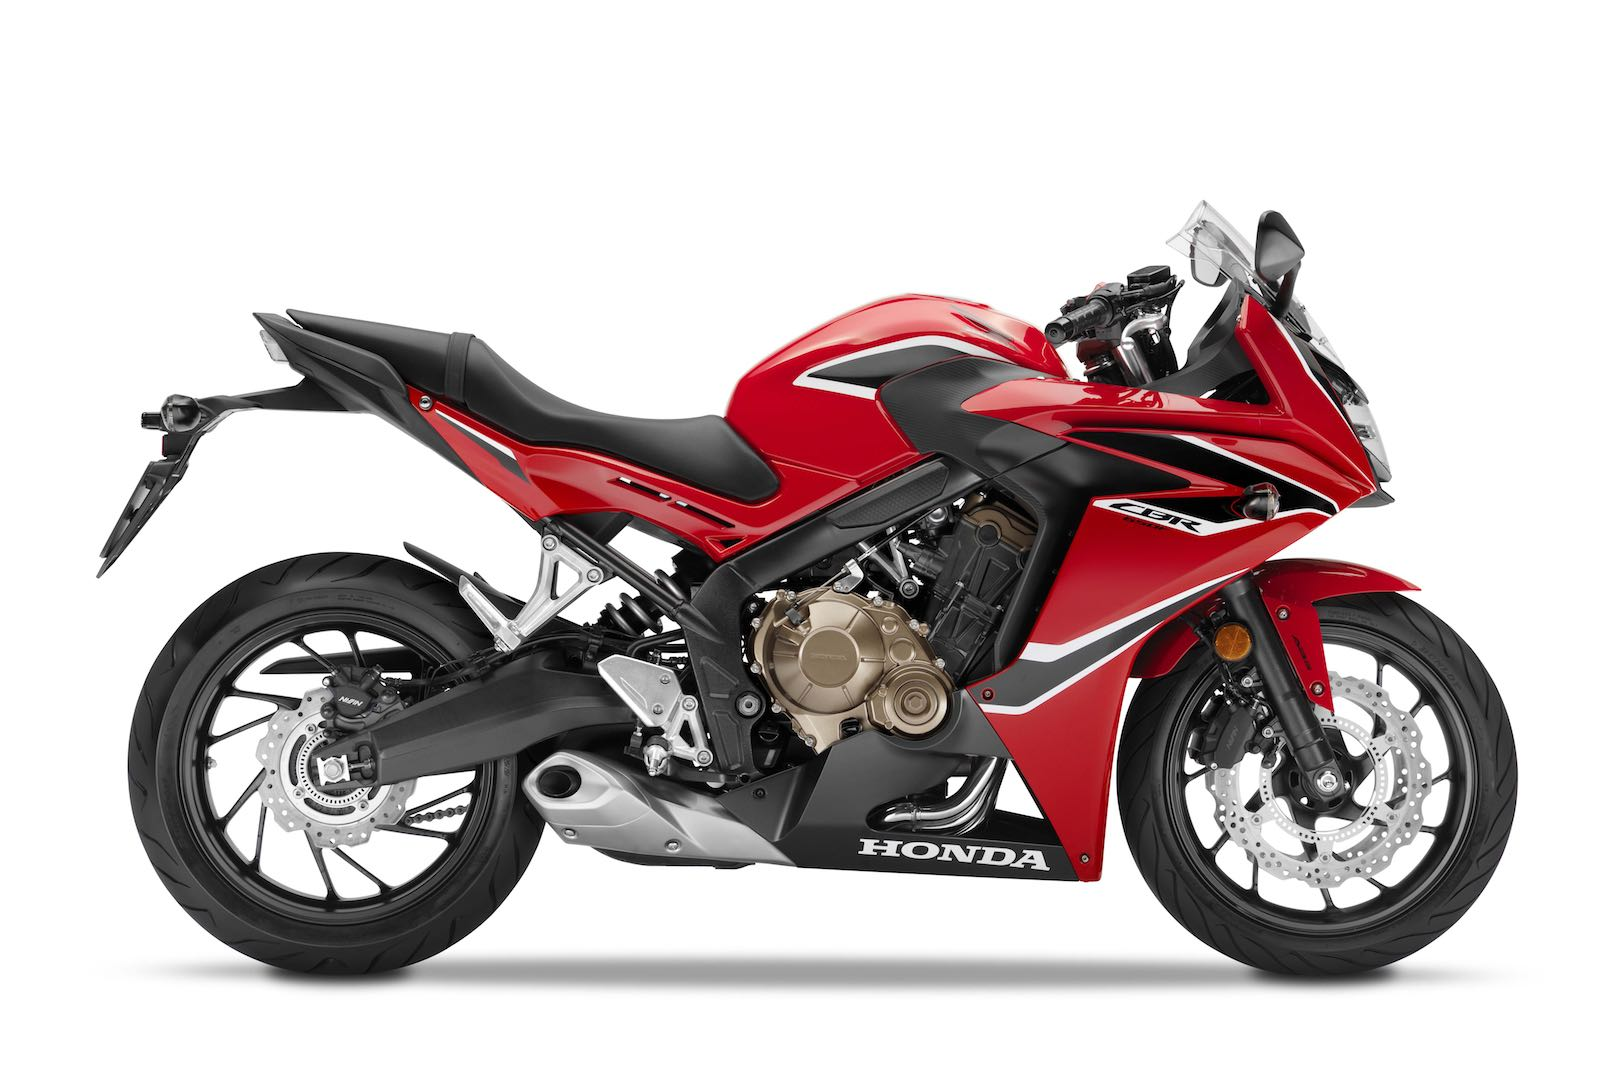 2018 Honda CBR650F Buyer's Guide | Specs & Price